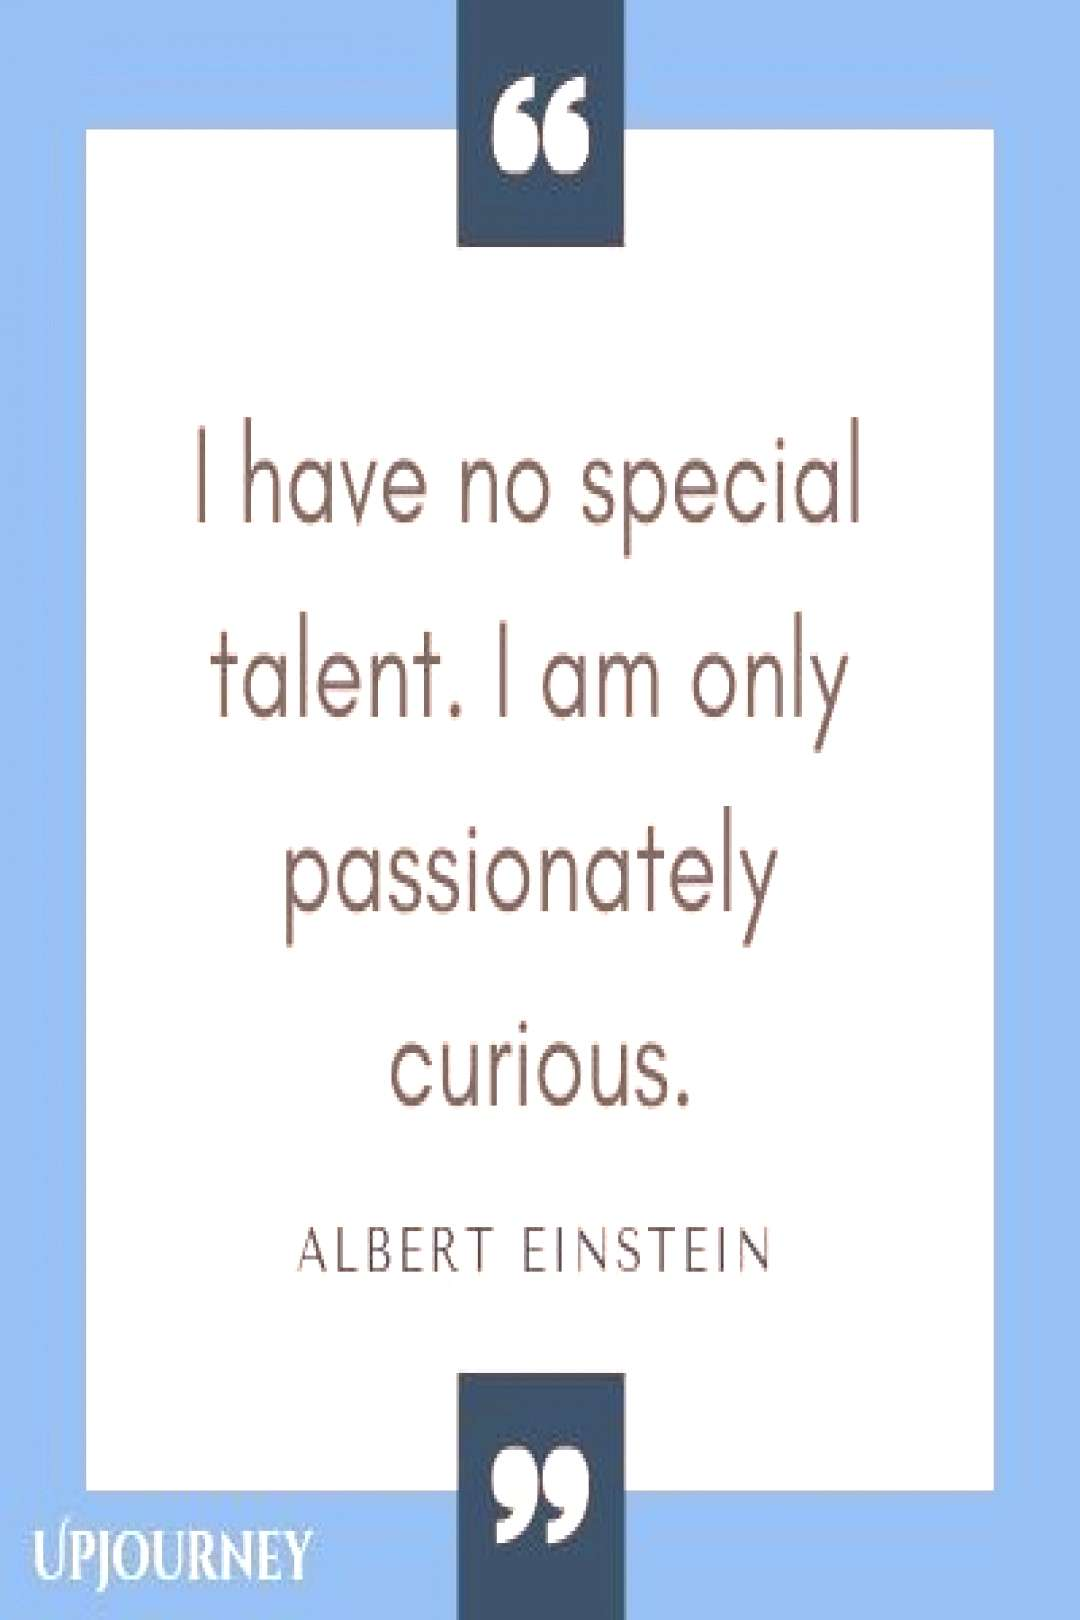 I have no special talent. I am only passionately curious - Albert Einstein.